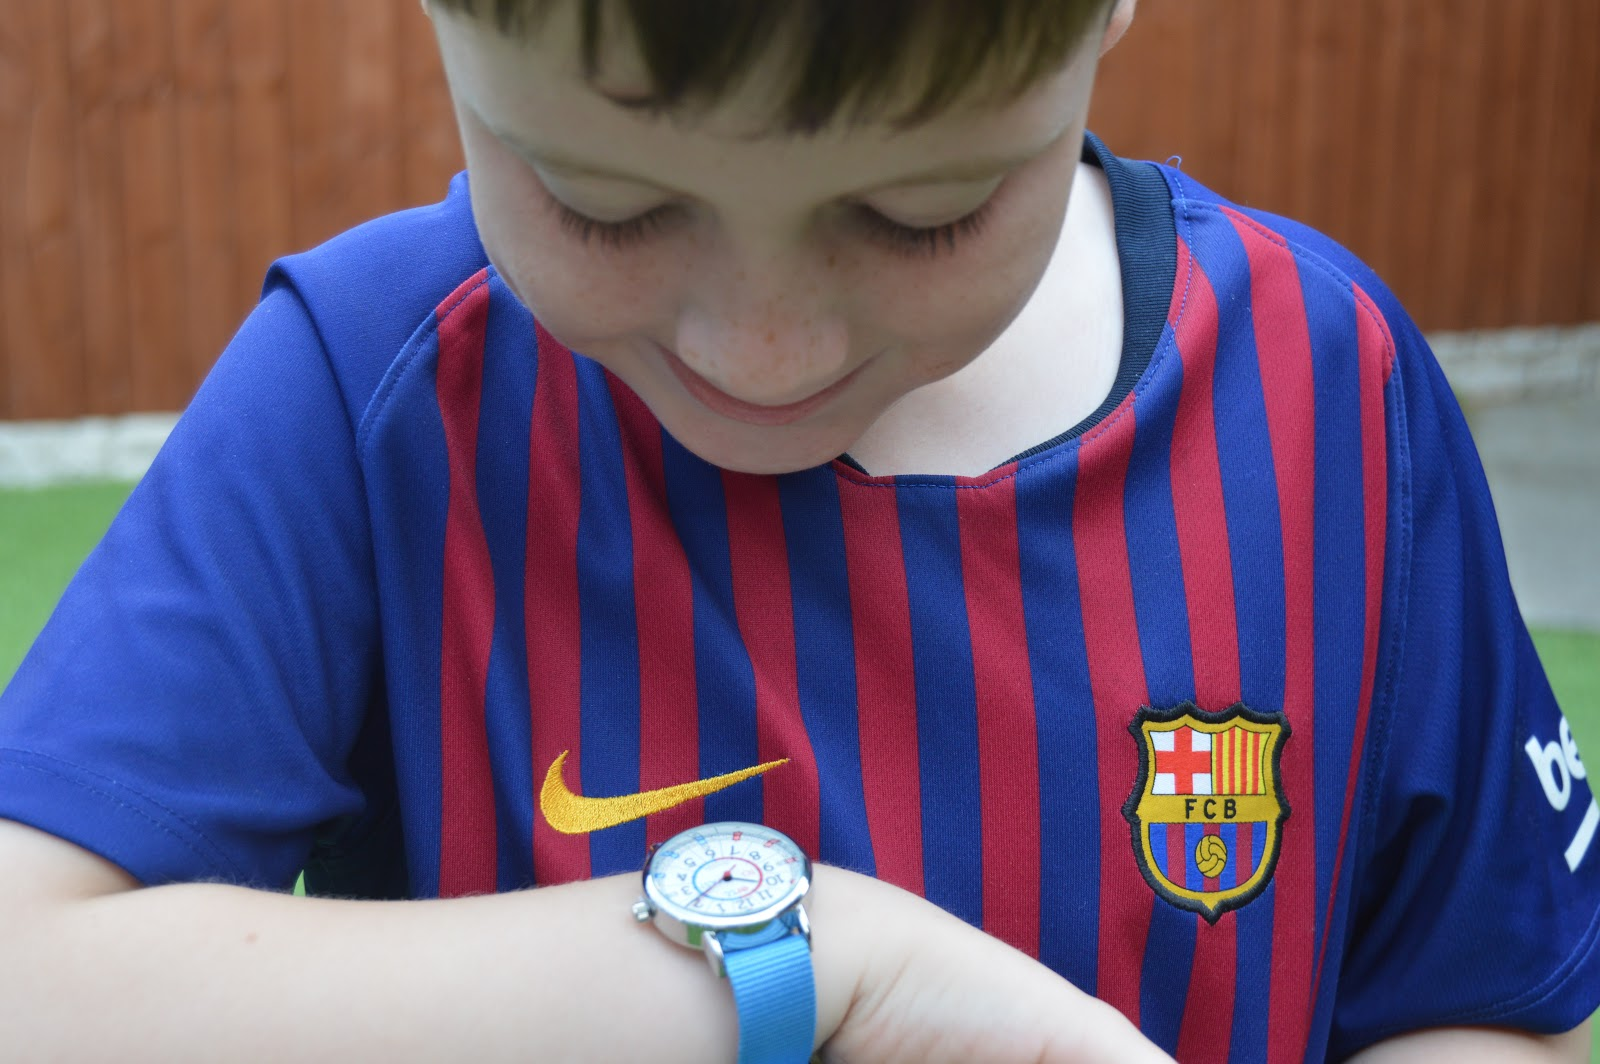 Boy looking at his watch